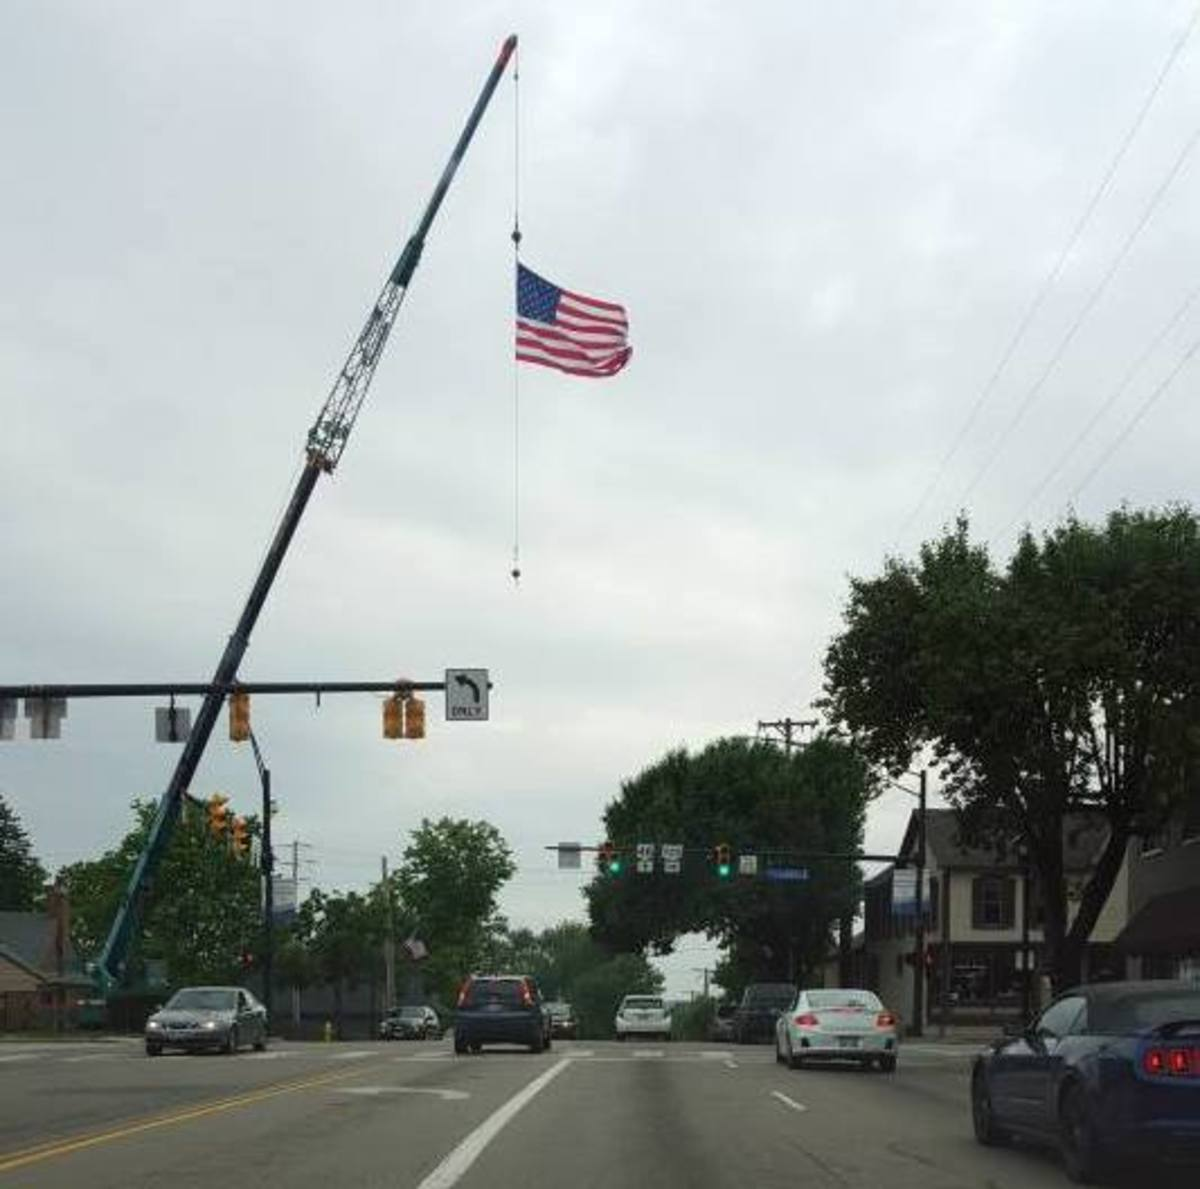 In my little town, the American flag flies high for the Fourth of July!